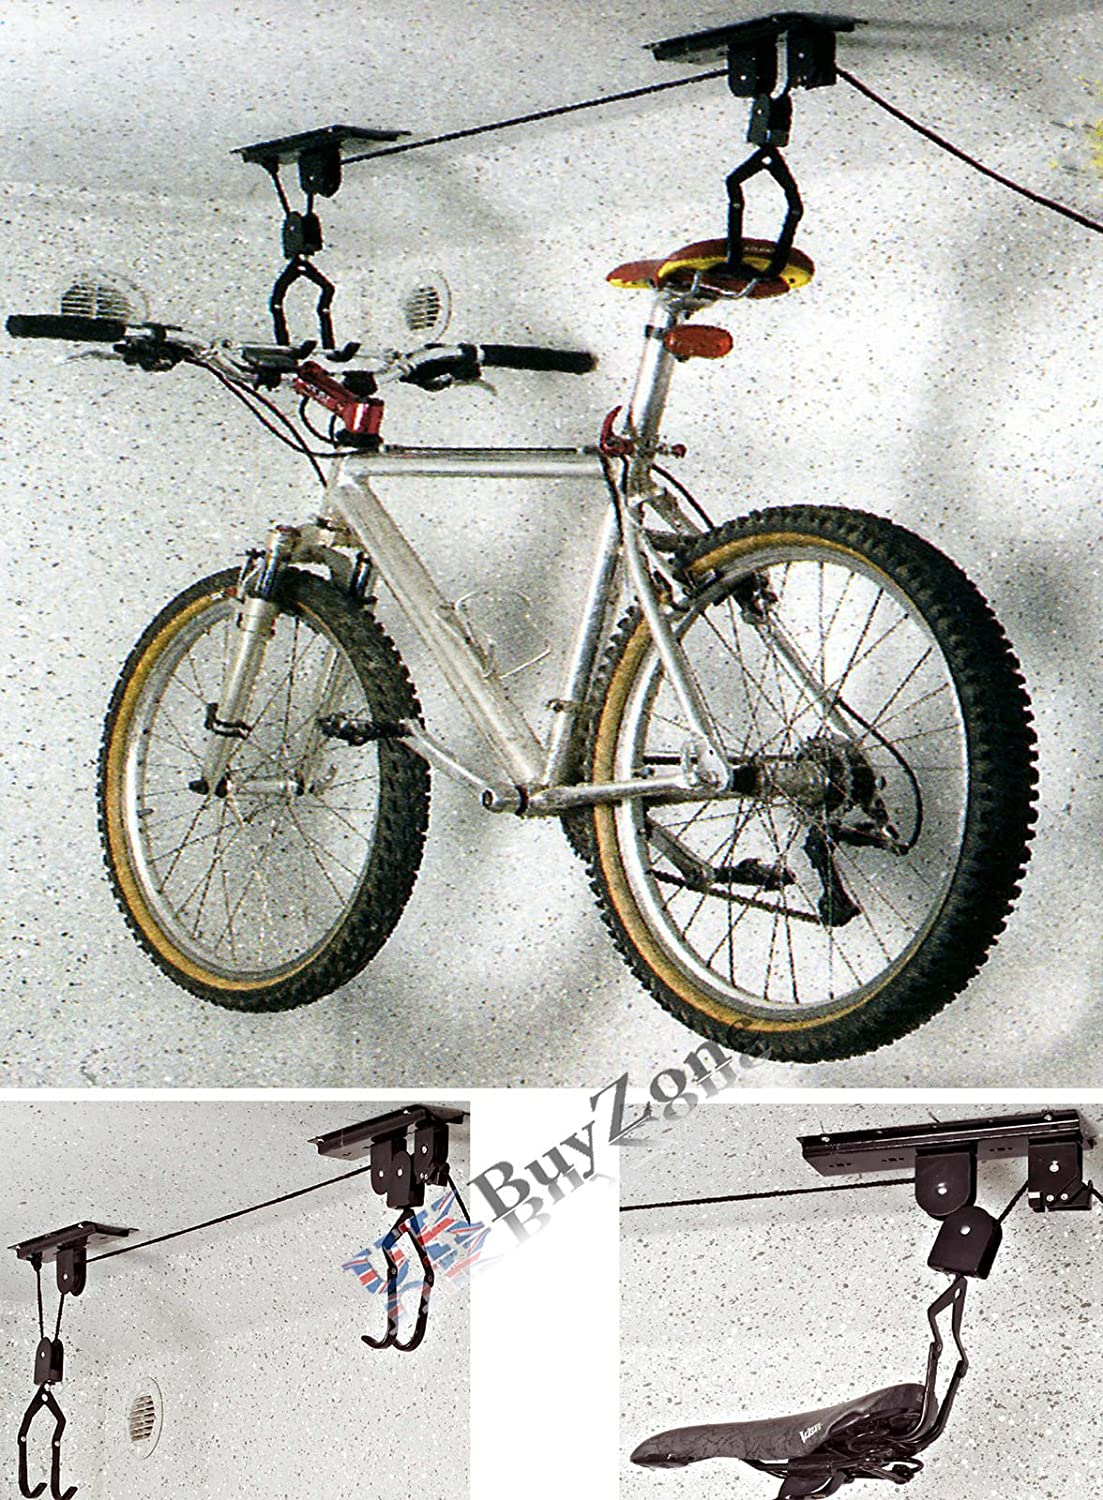 Bicycle Lift Bike Support plafond POULIE PALAN Rack Garage Stockage Crochets Hanger